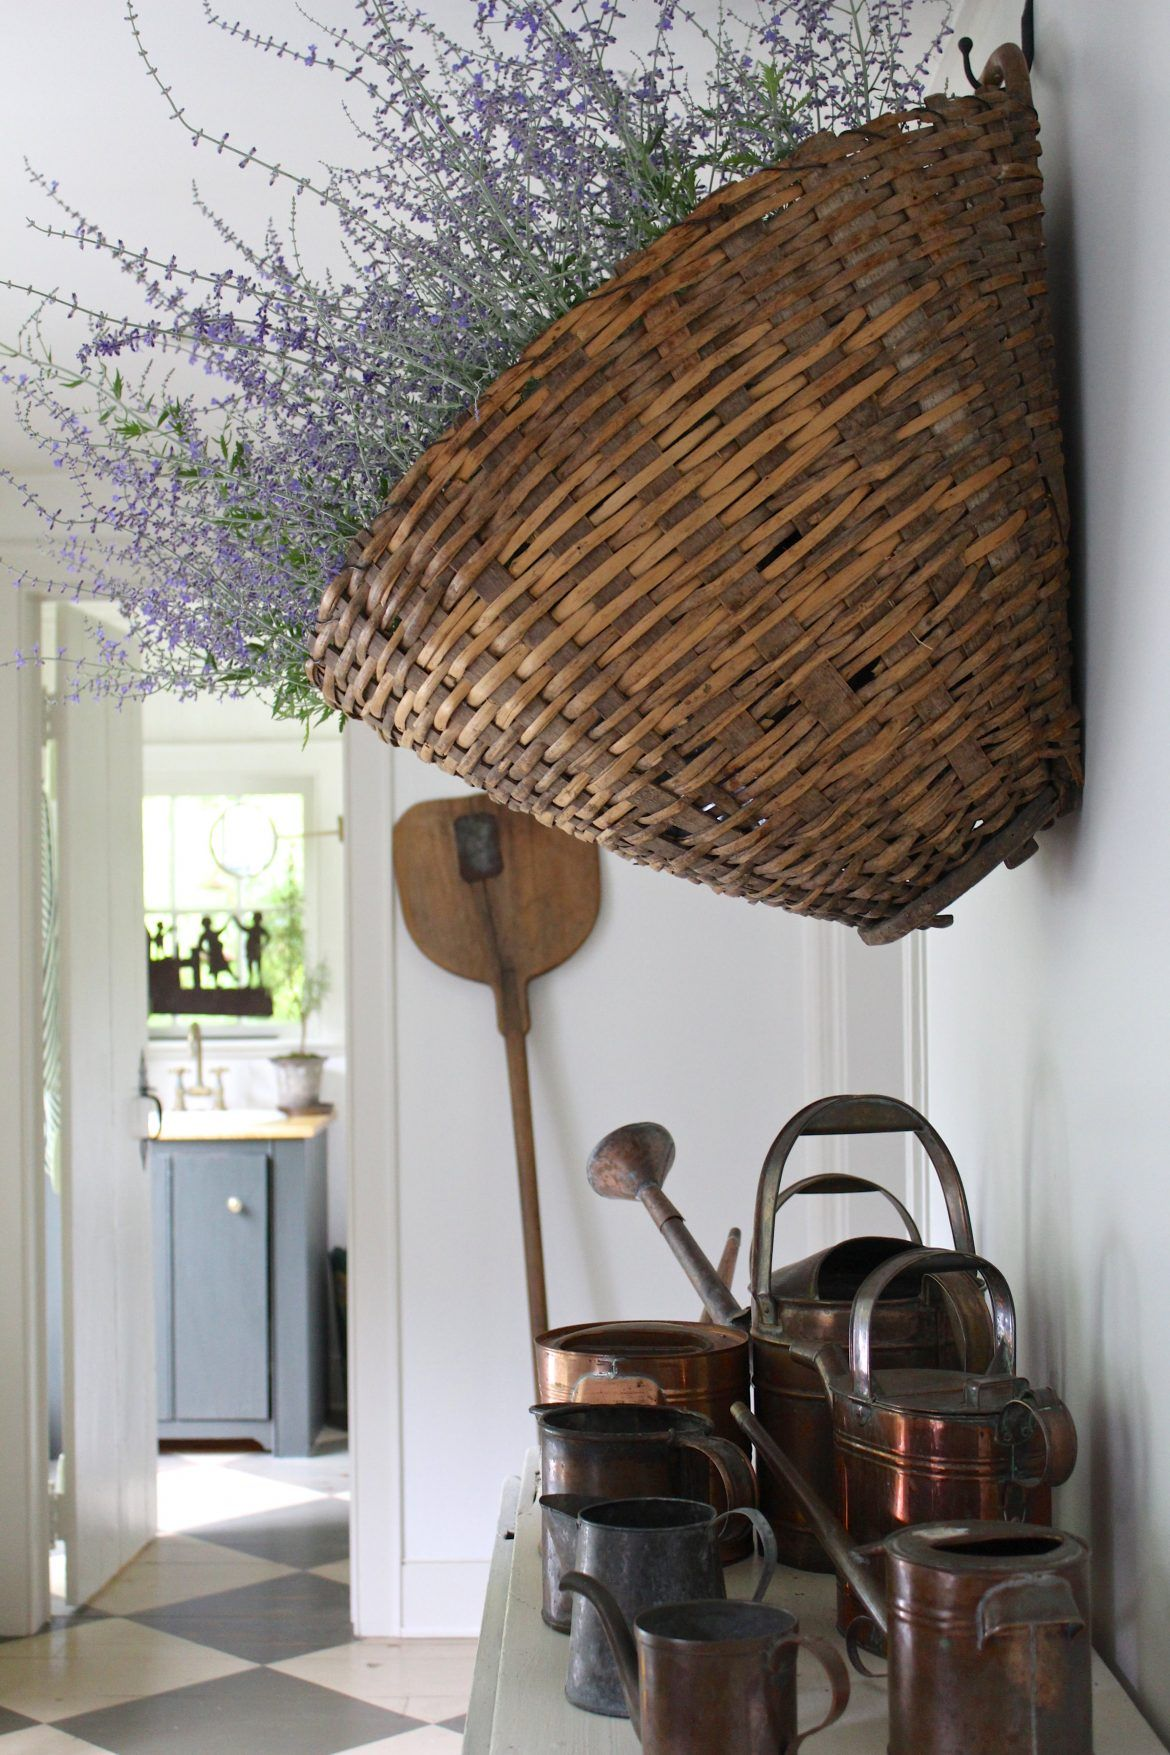 basket full of sage and a collection of watering cans